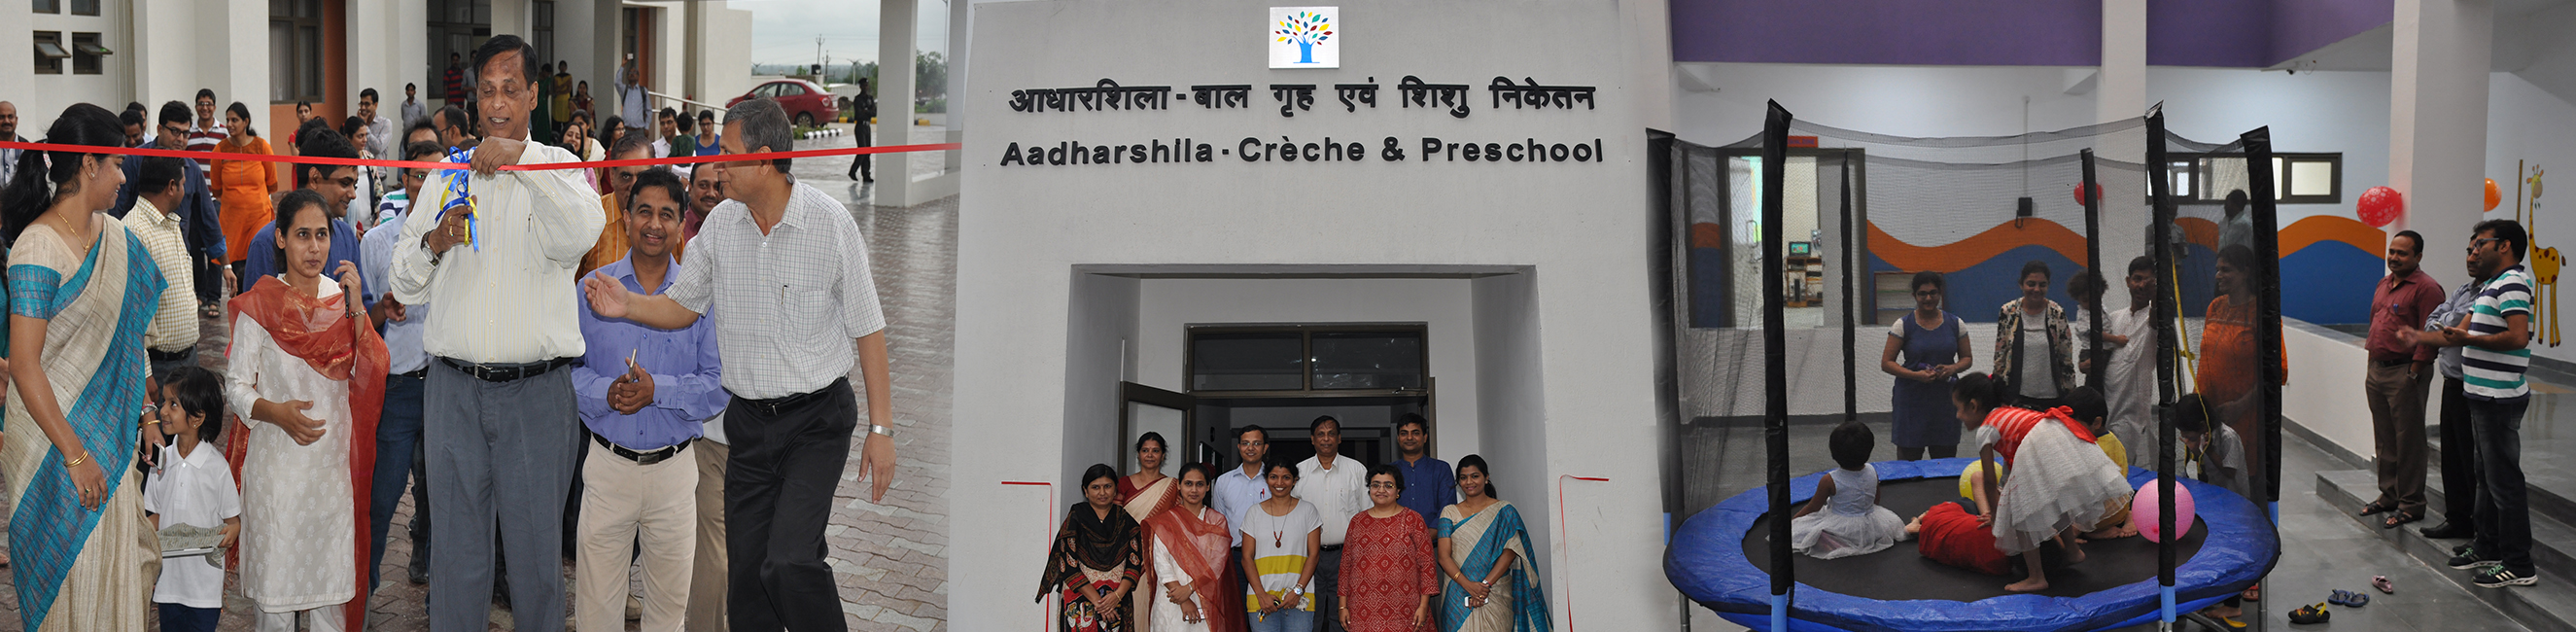 Aadharshila Inauguration